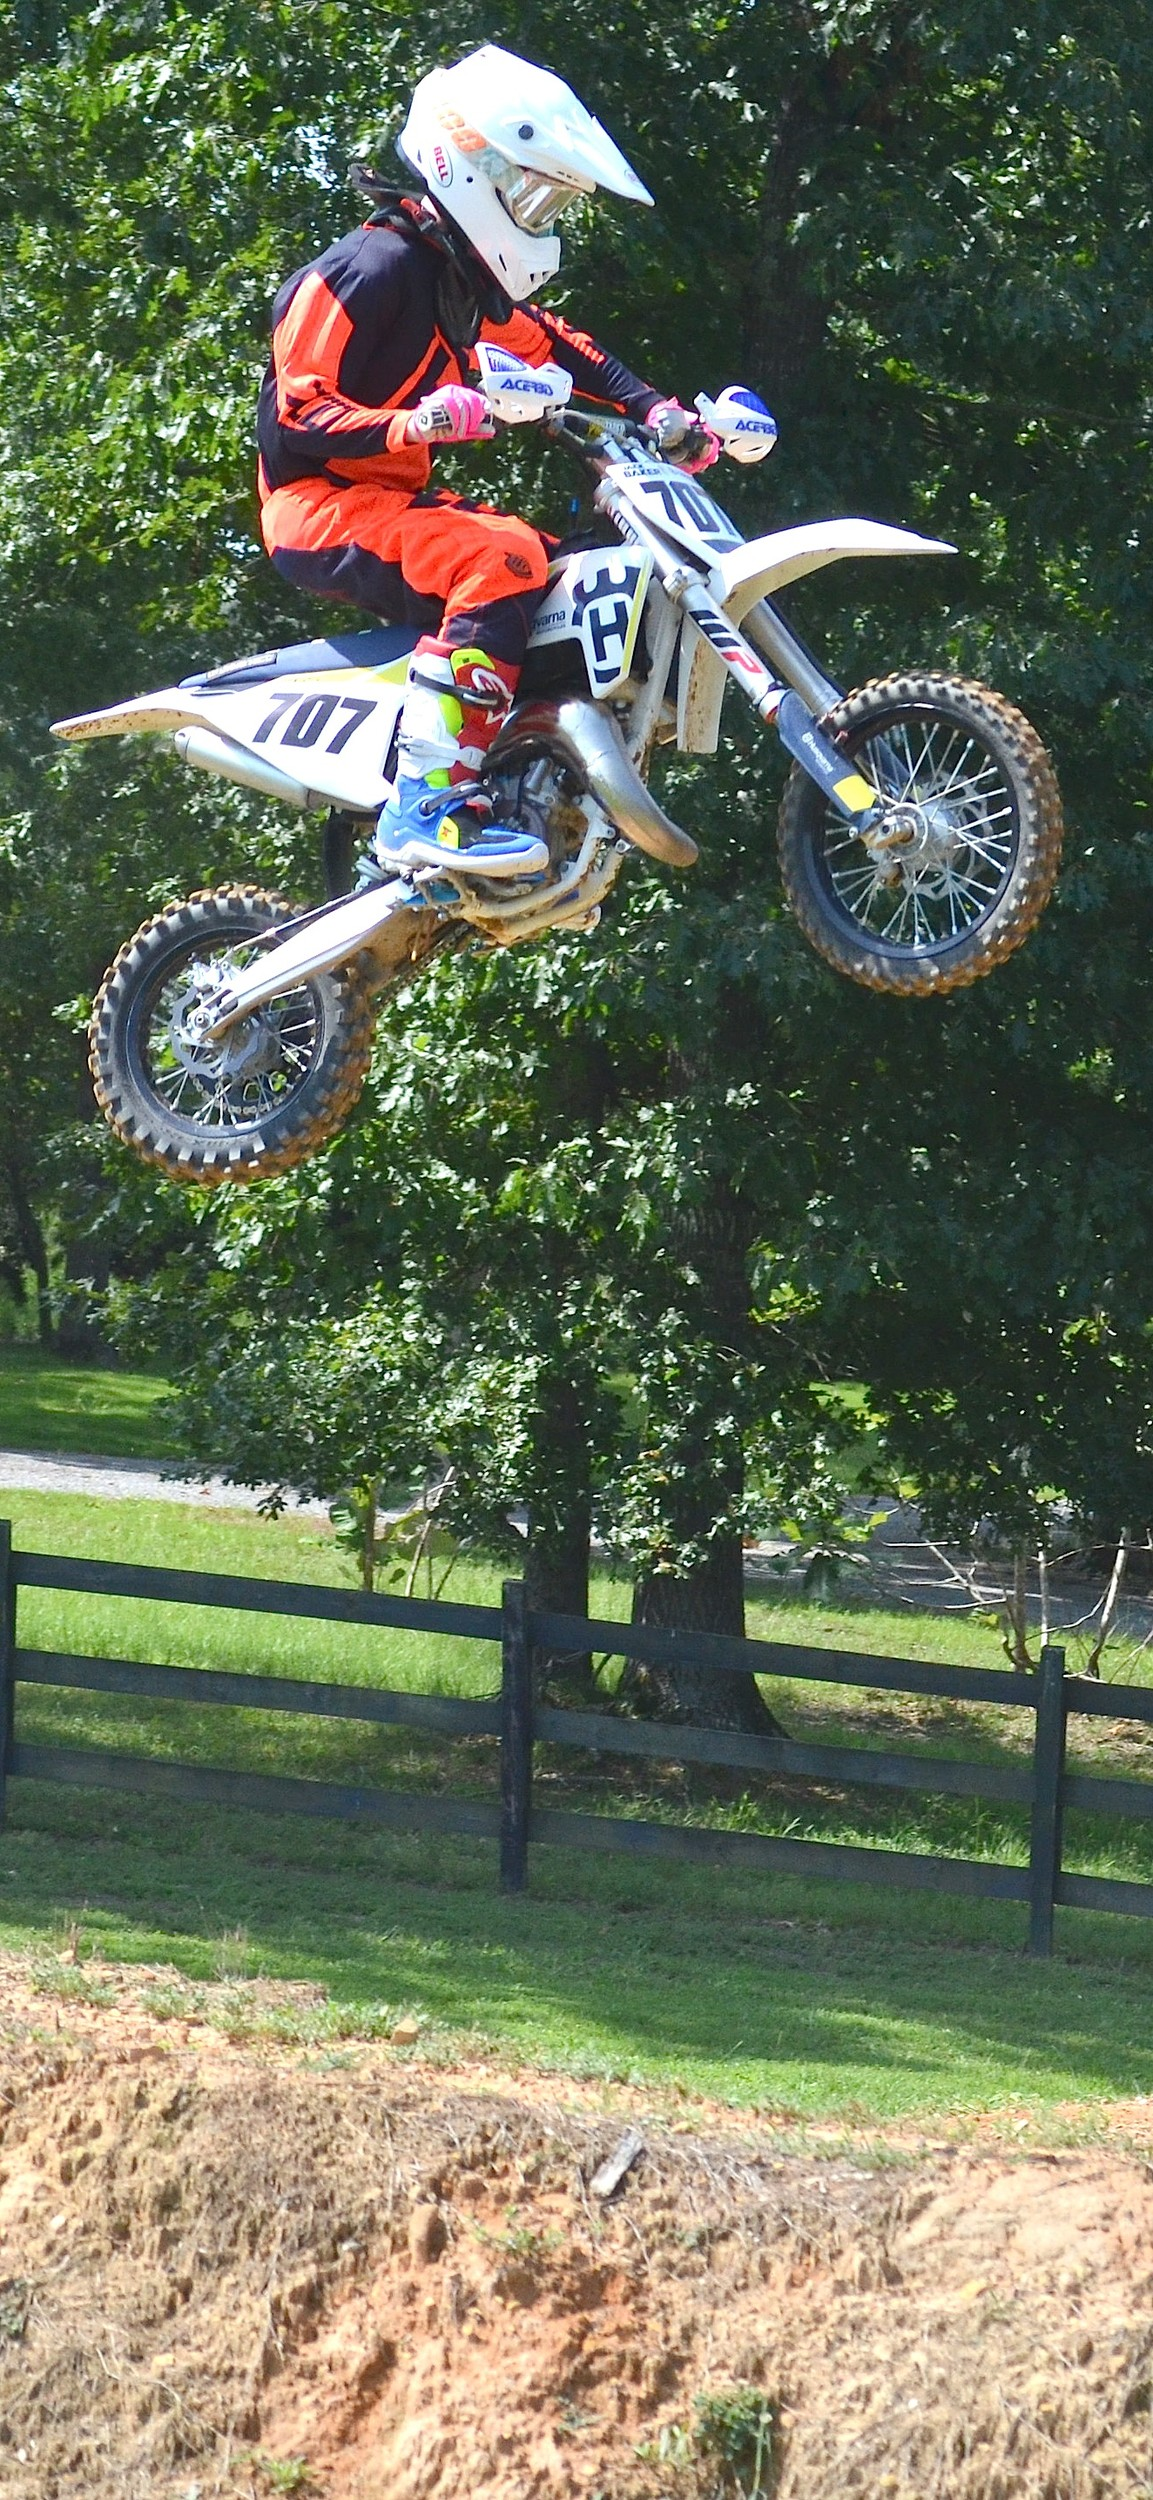 Jack Baker practices on the track at his house in Arley. The 12 year old will compete in the Rocky Mountain ATV/MC National Motocross Championship at Loretta Lynn's Ranch in Hurricane Mills, Tenn., this week.